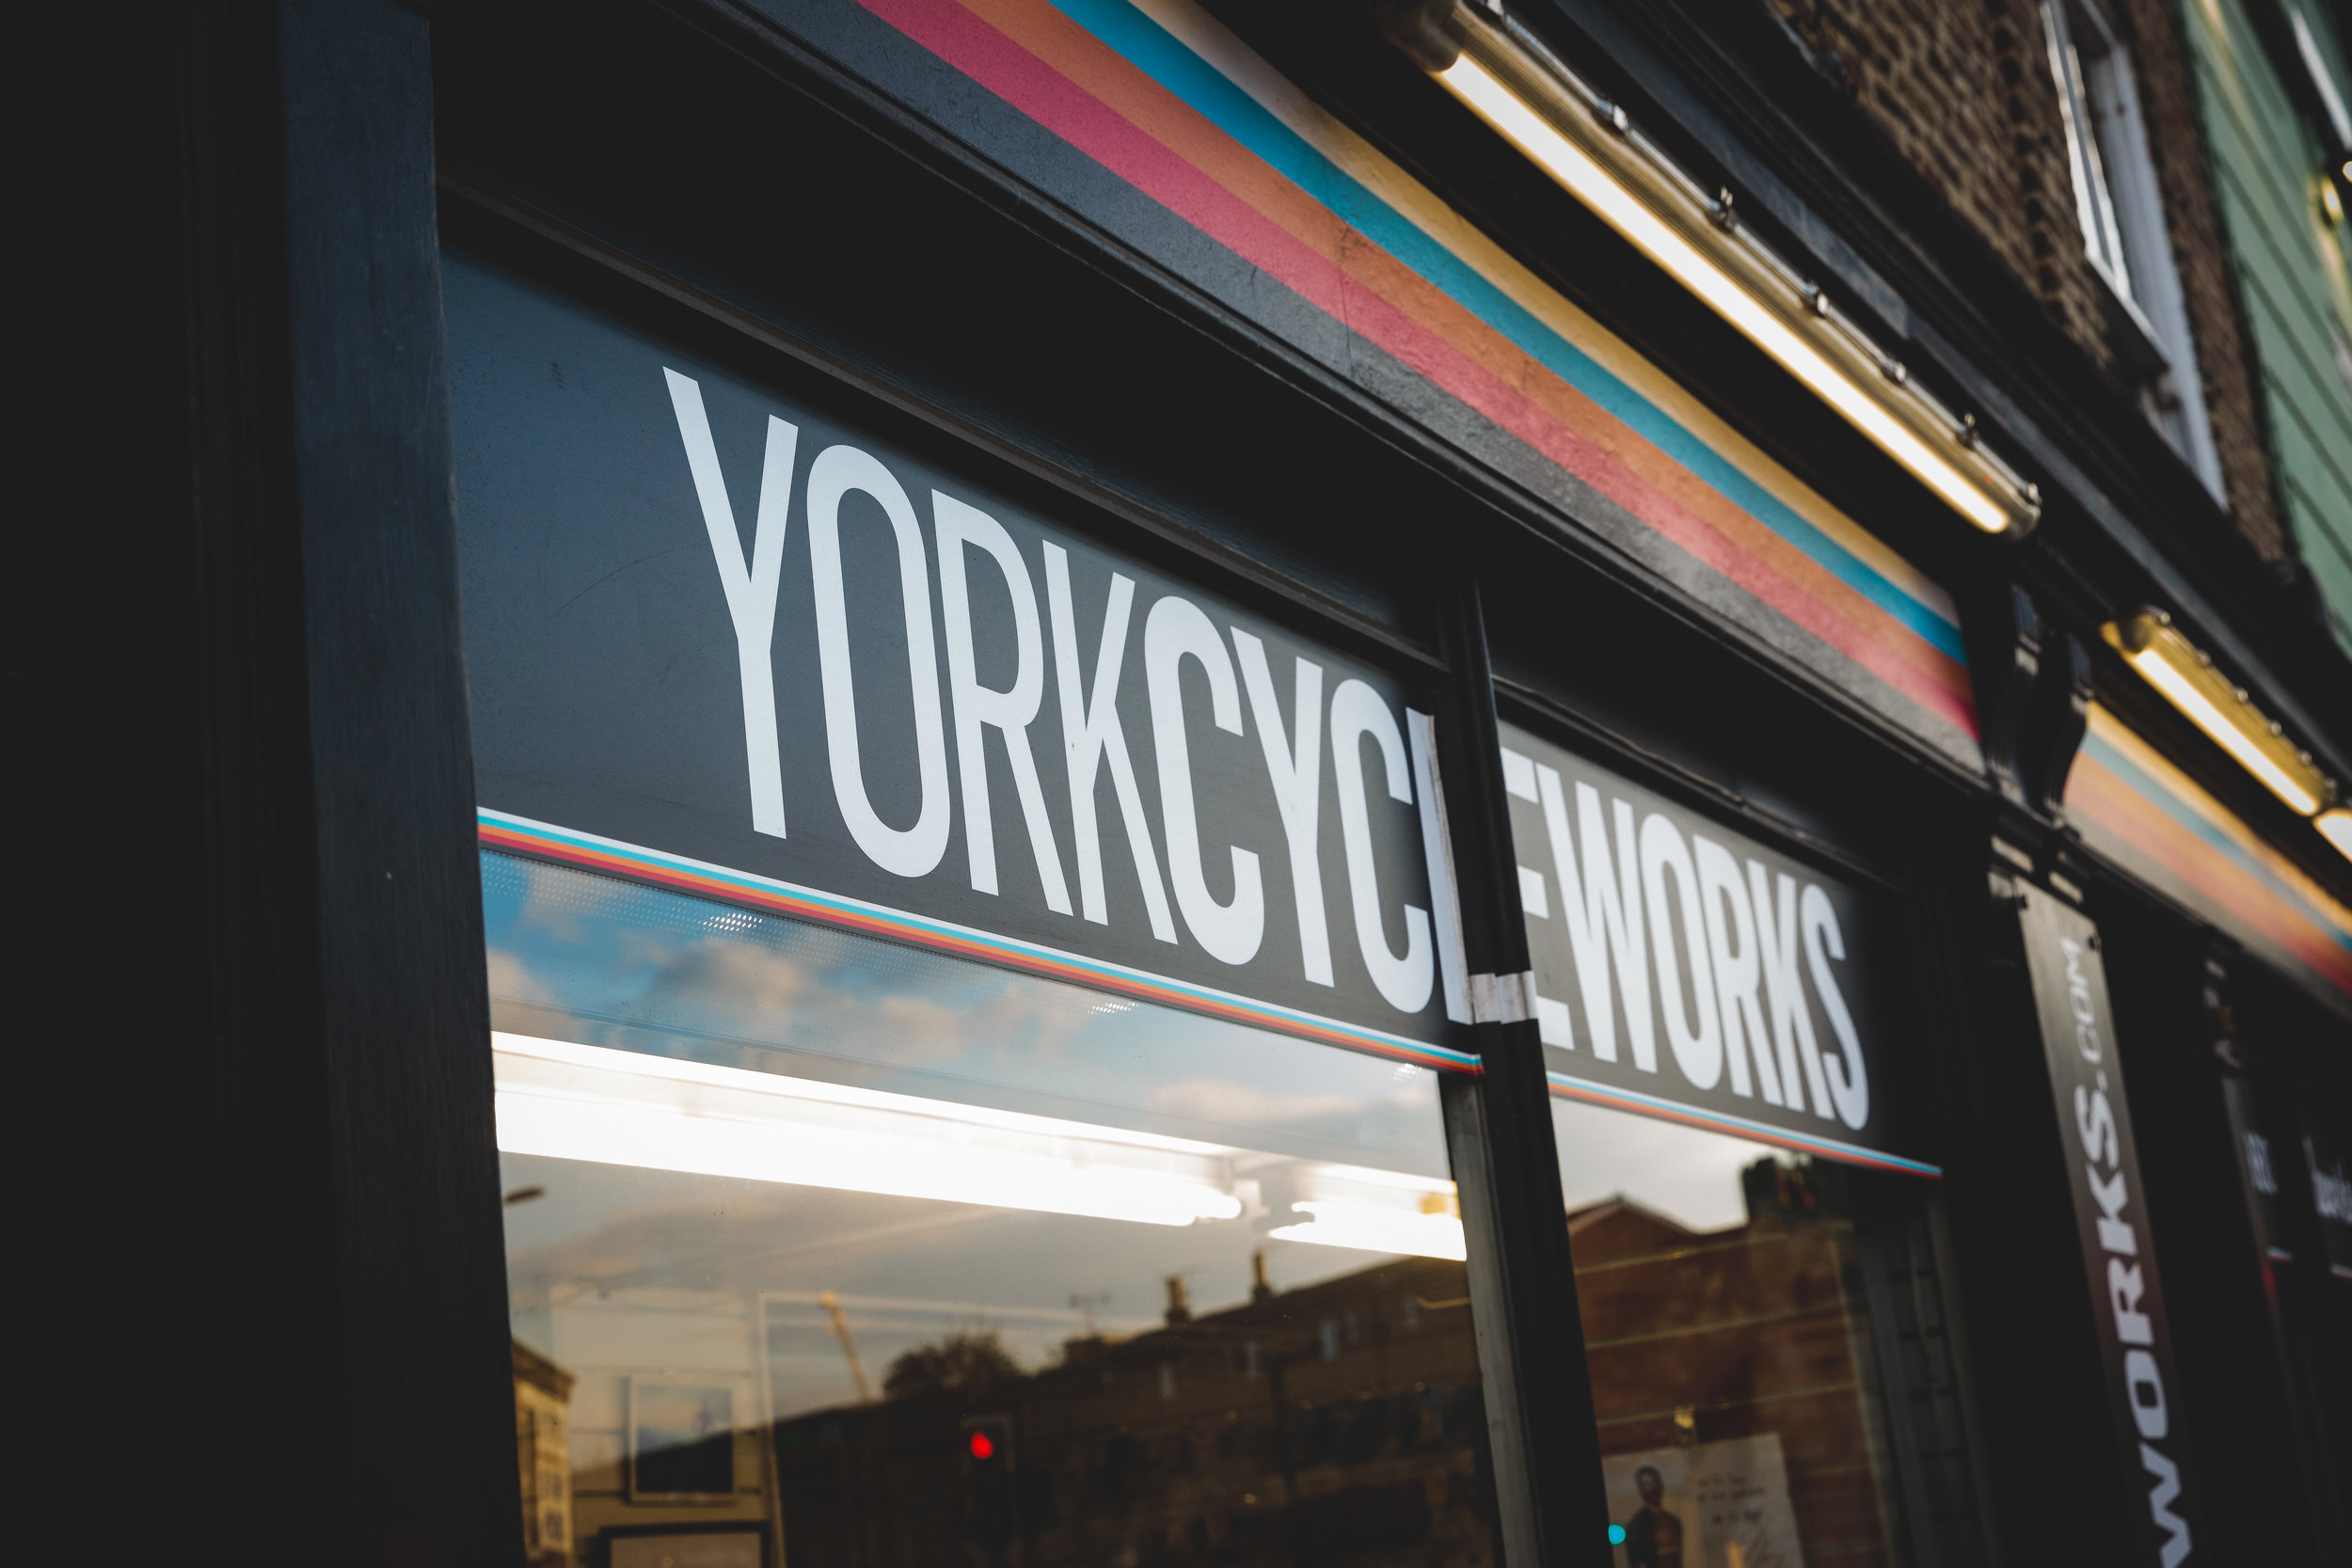 York Cycleworks Storefront